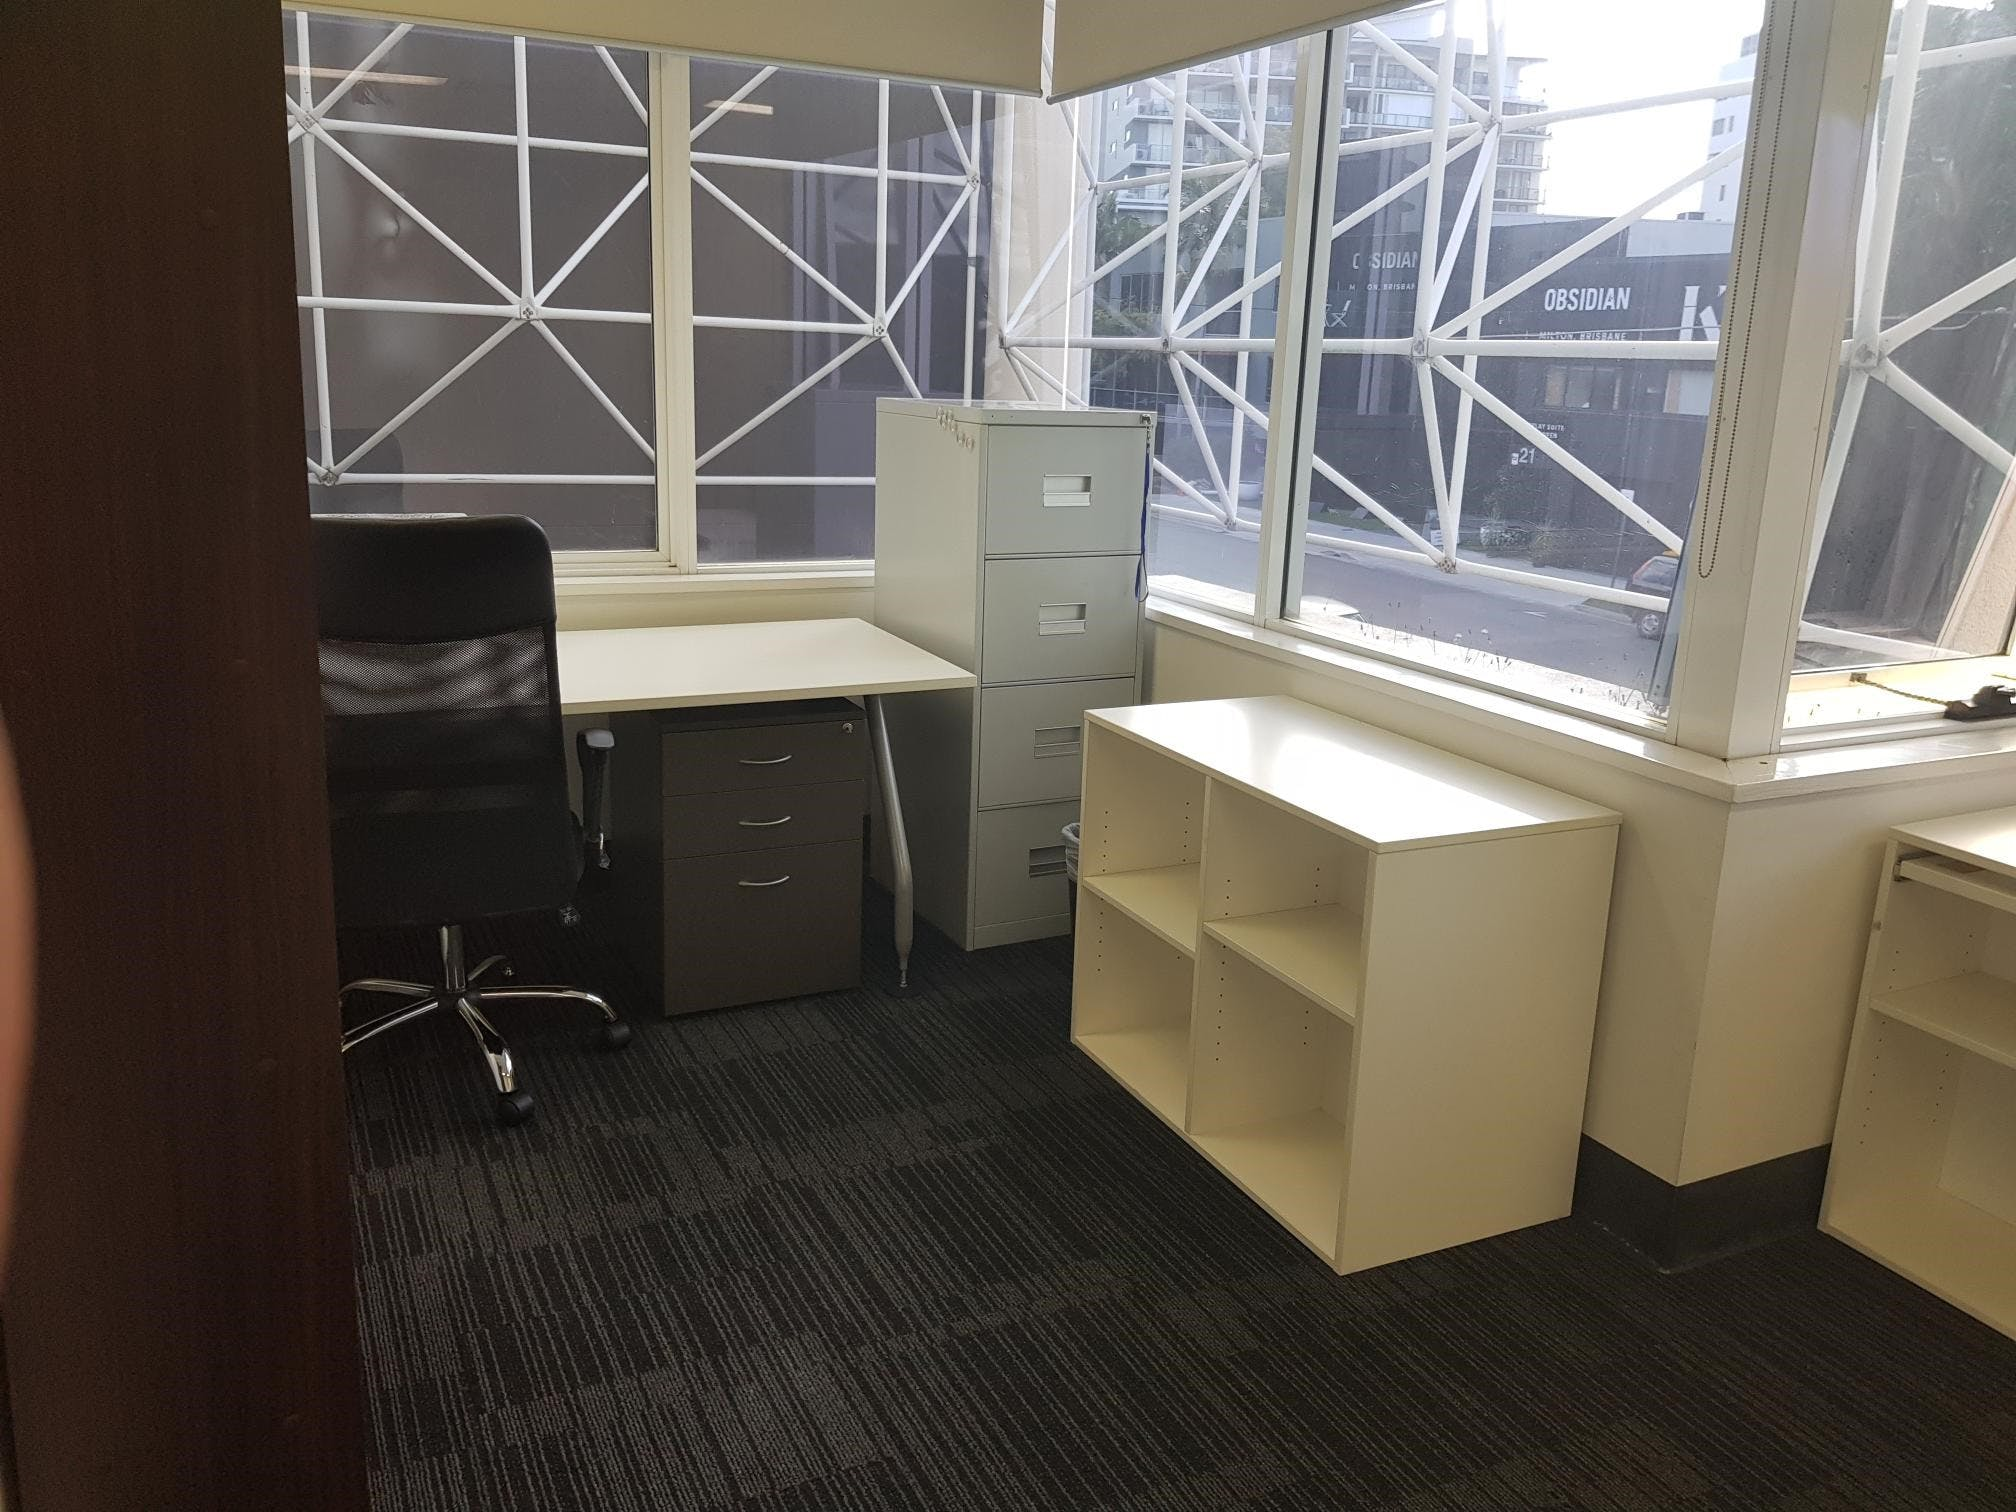 Suite 411, private office at Bluedog Business Centre, image 1